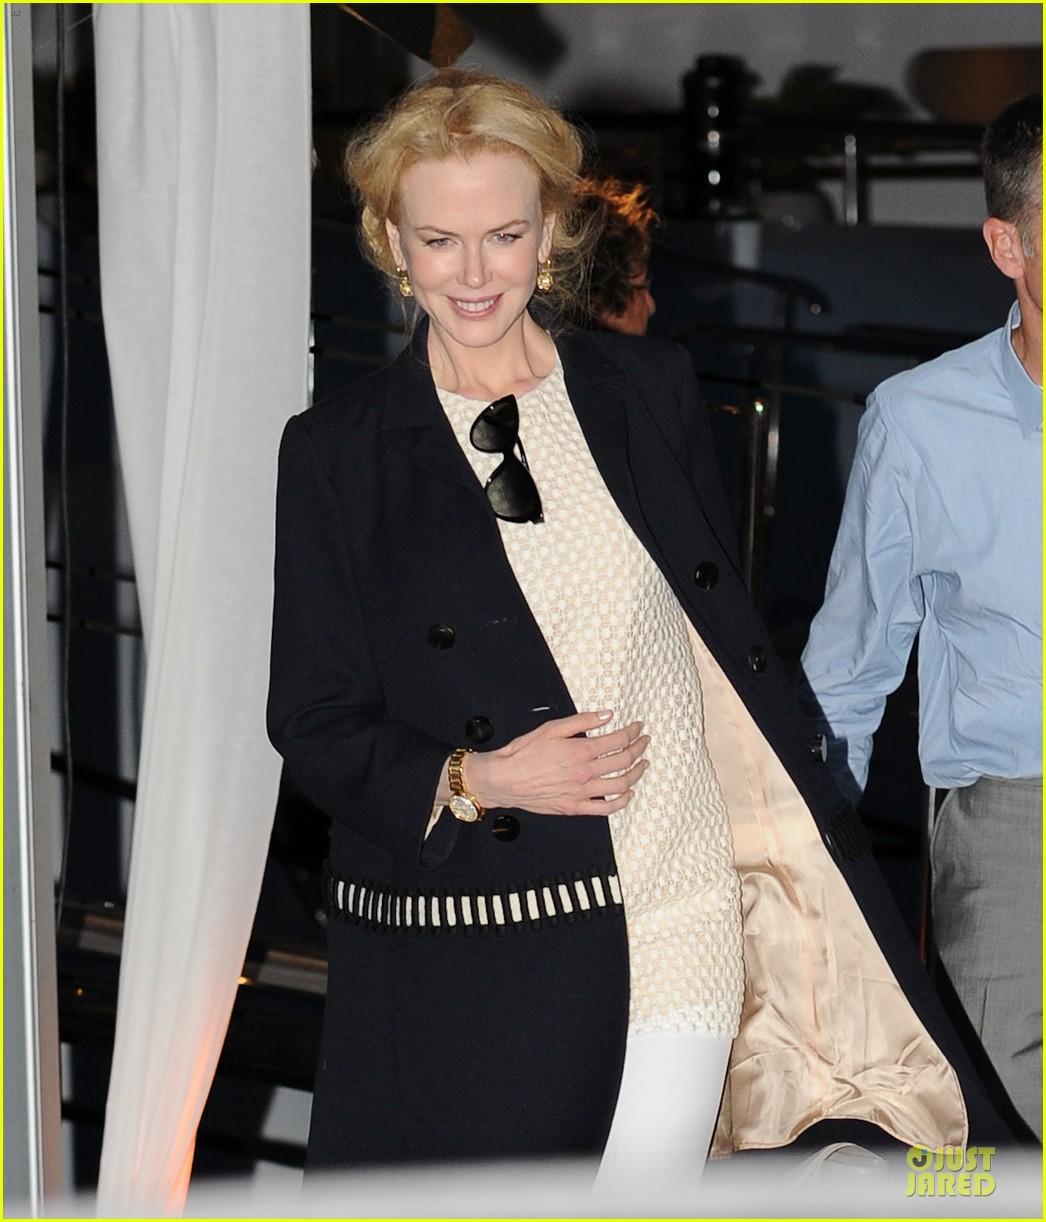 Nicole Kidman At A Party In Cannes